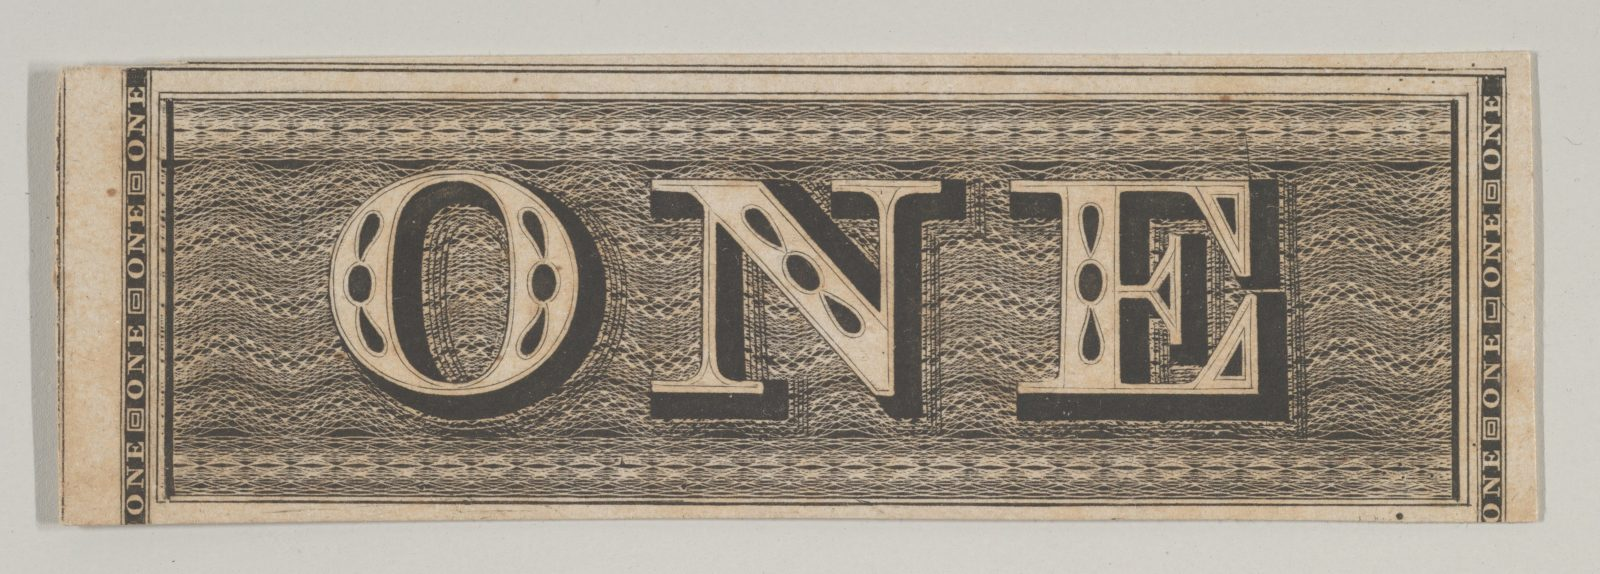 Banknote motif: the word ONE set against a rectangular band of lathe work